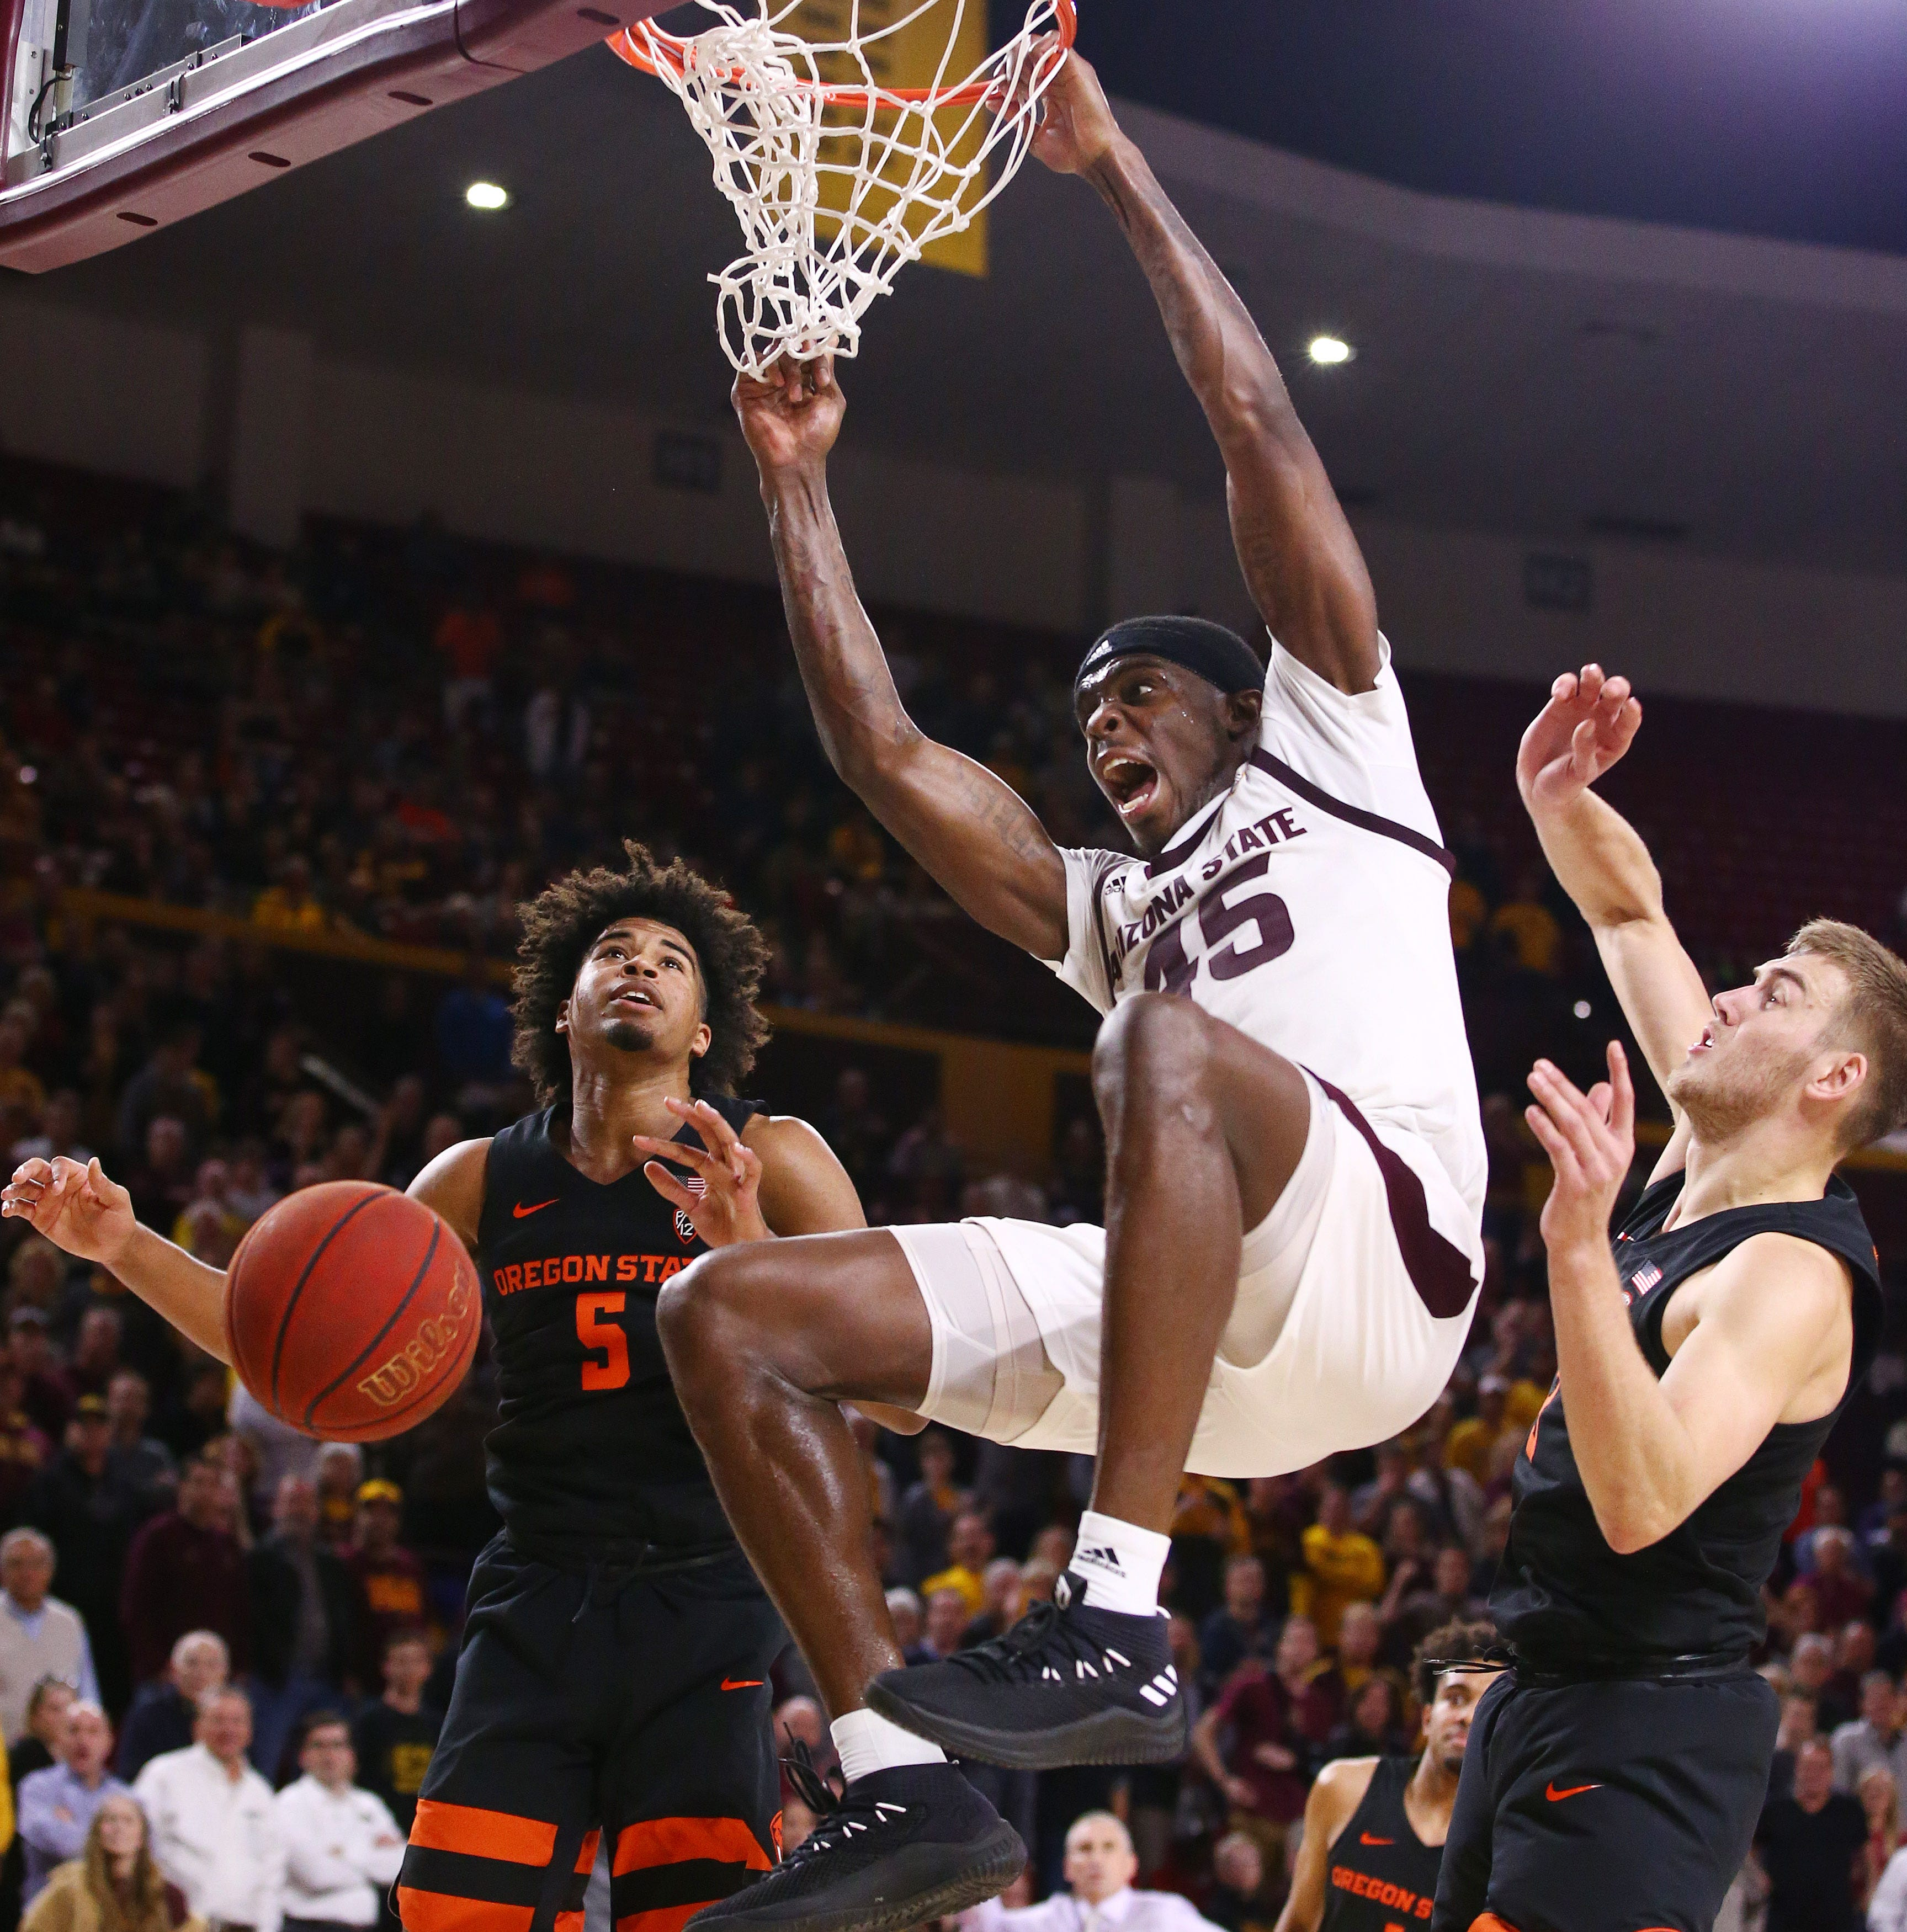 ASU overcomes mistakes, holds on to edge Oregon State